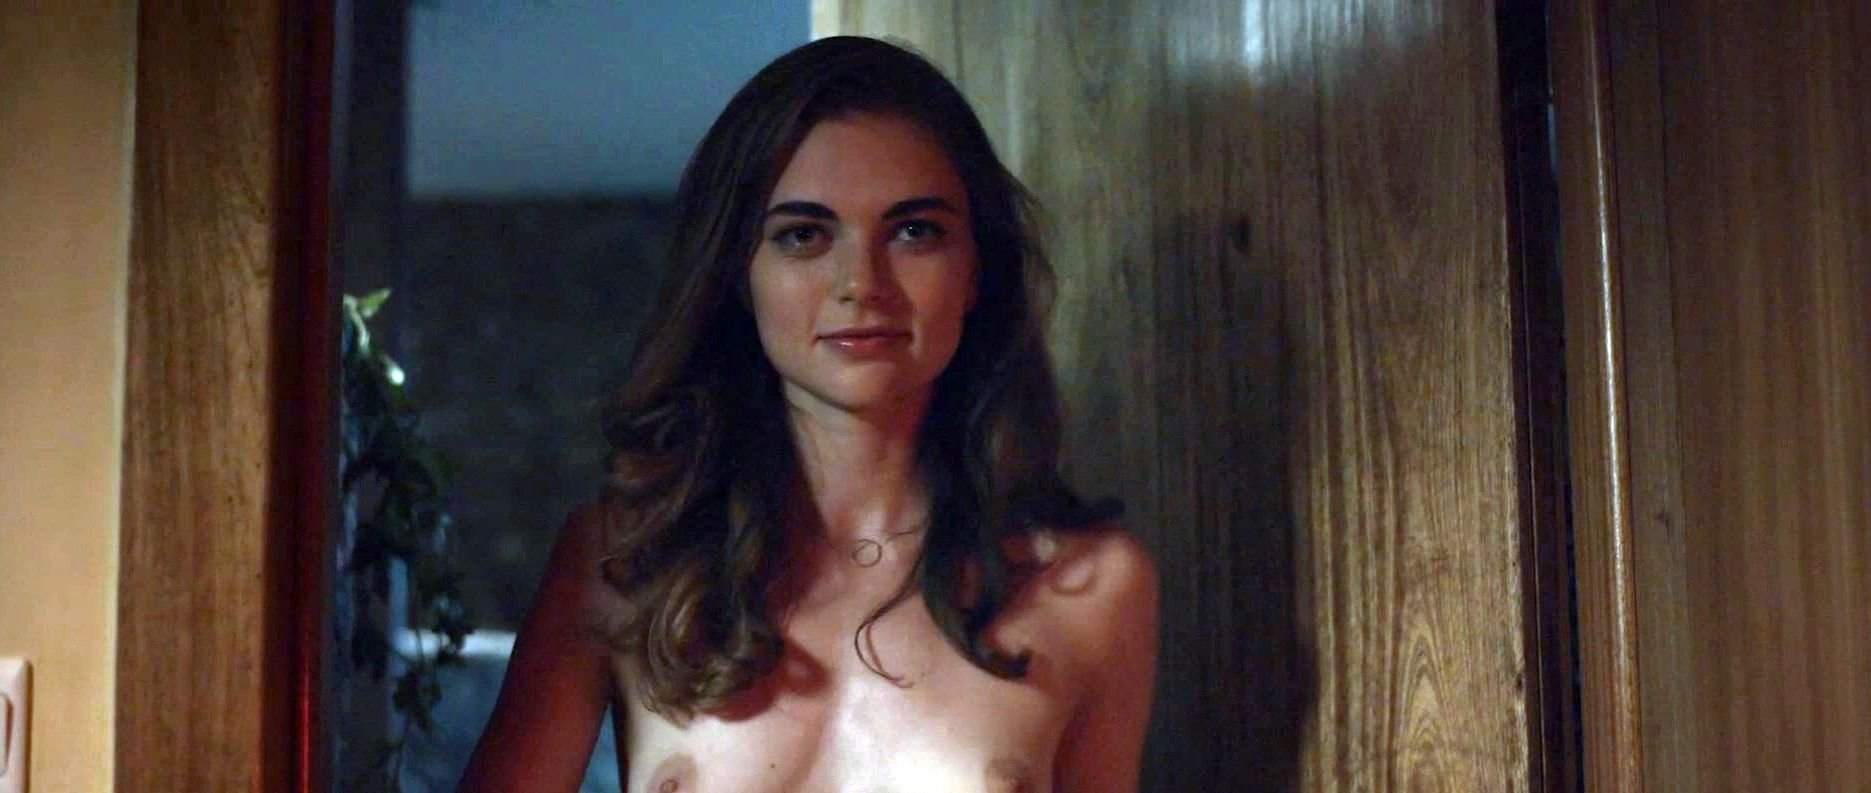 Amy Schumer Nua jenny boyd nude – hex (4 pics + gif & video) | #thefappening